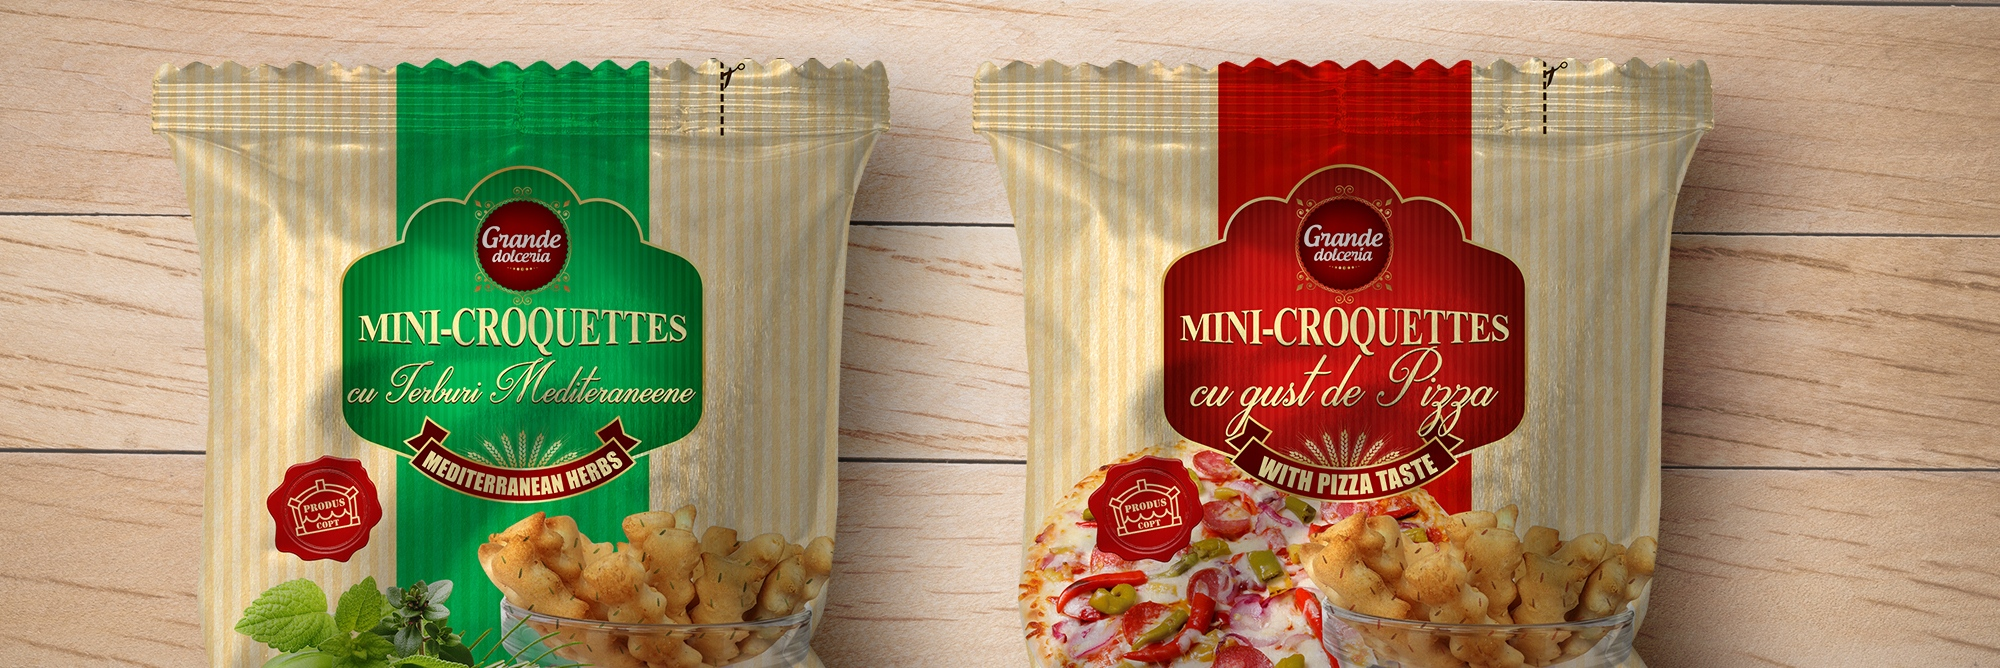 Croquettes Packaging design